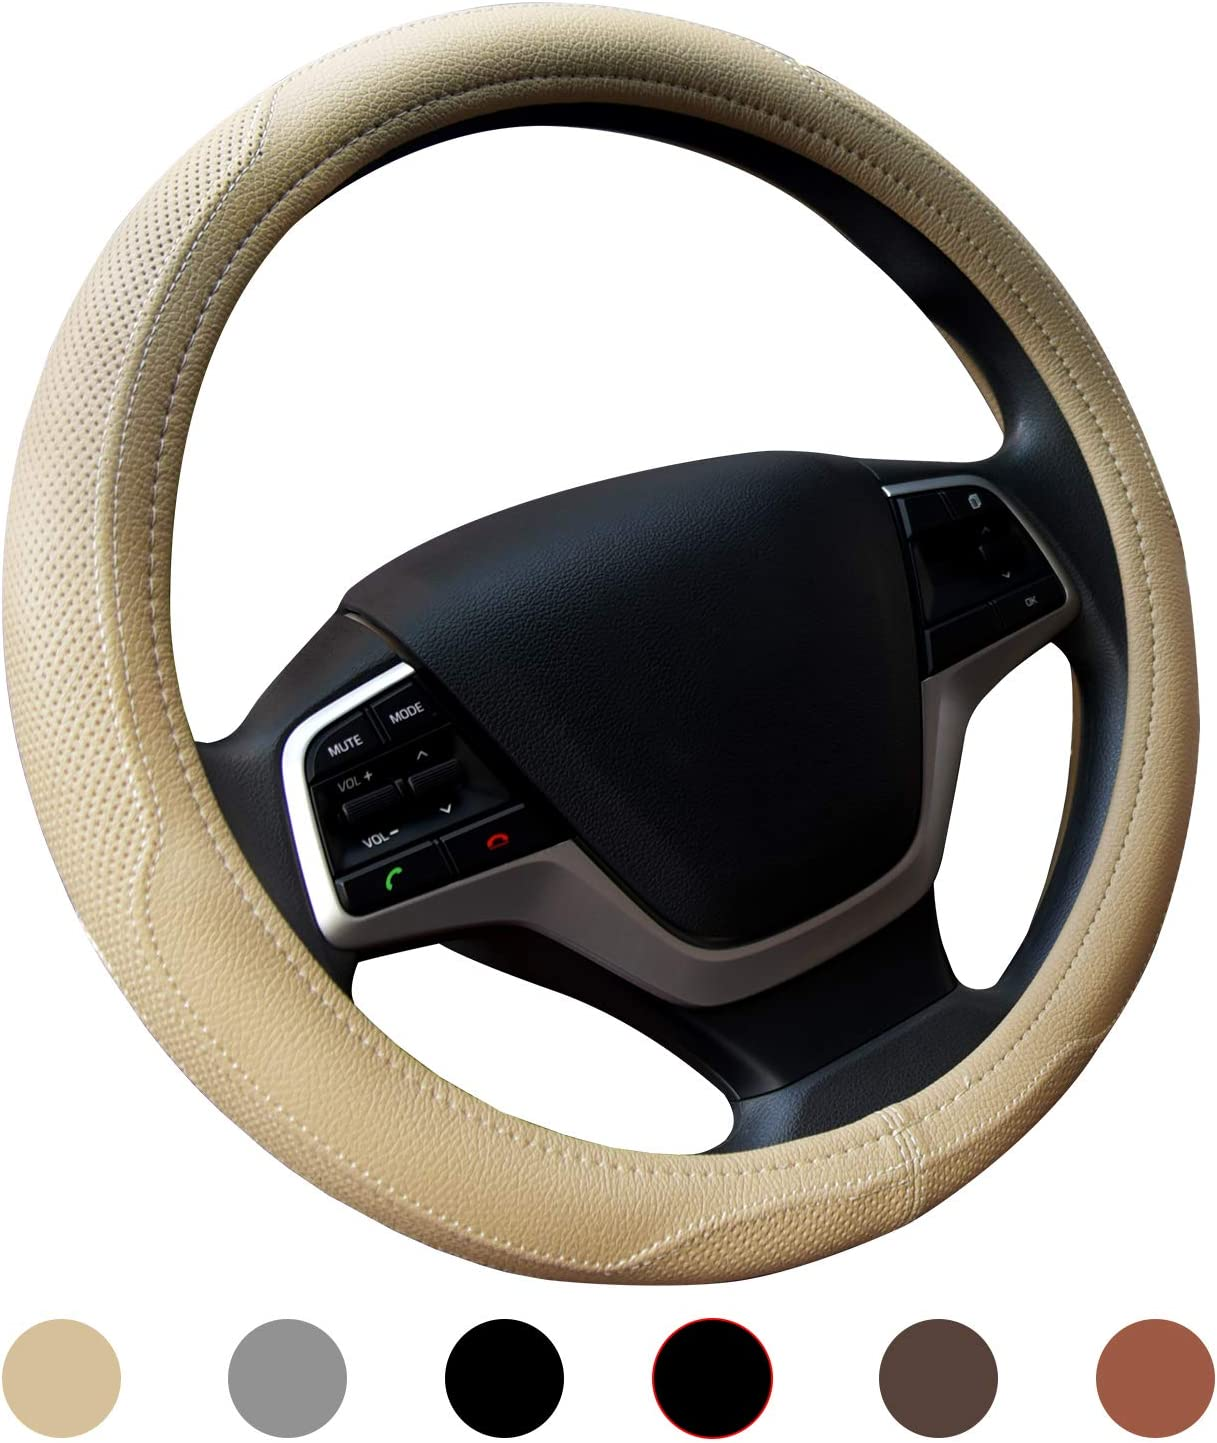 Ylife Microfiber Leather Car Steering Wheel Cover, Universal 15 inch Breathable Anti Slip Auto Steering Wheel Covers, Beige